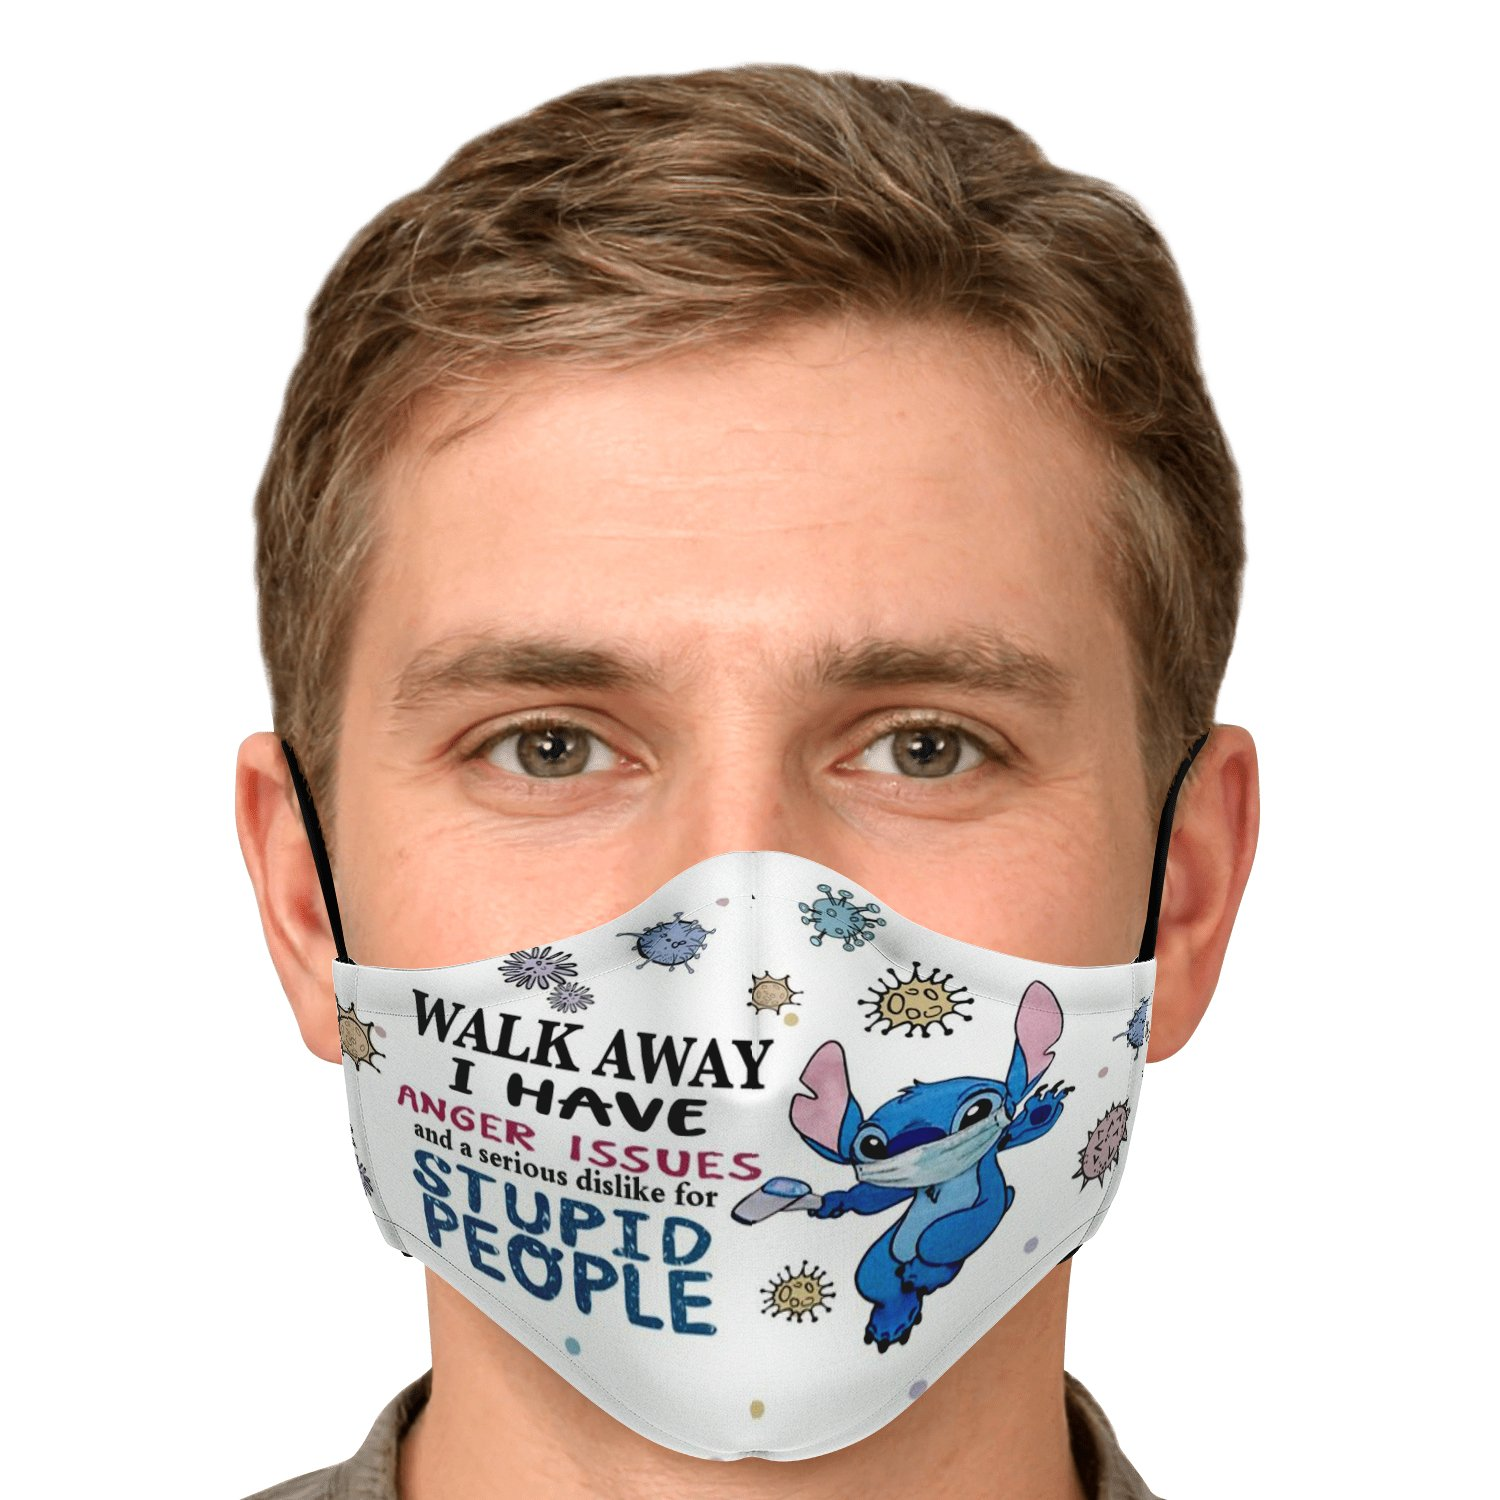 Serious Dislike For Stupid People Covid-19 Stitch Face Mask 5